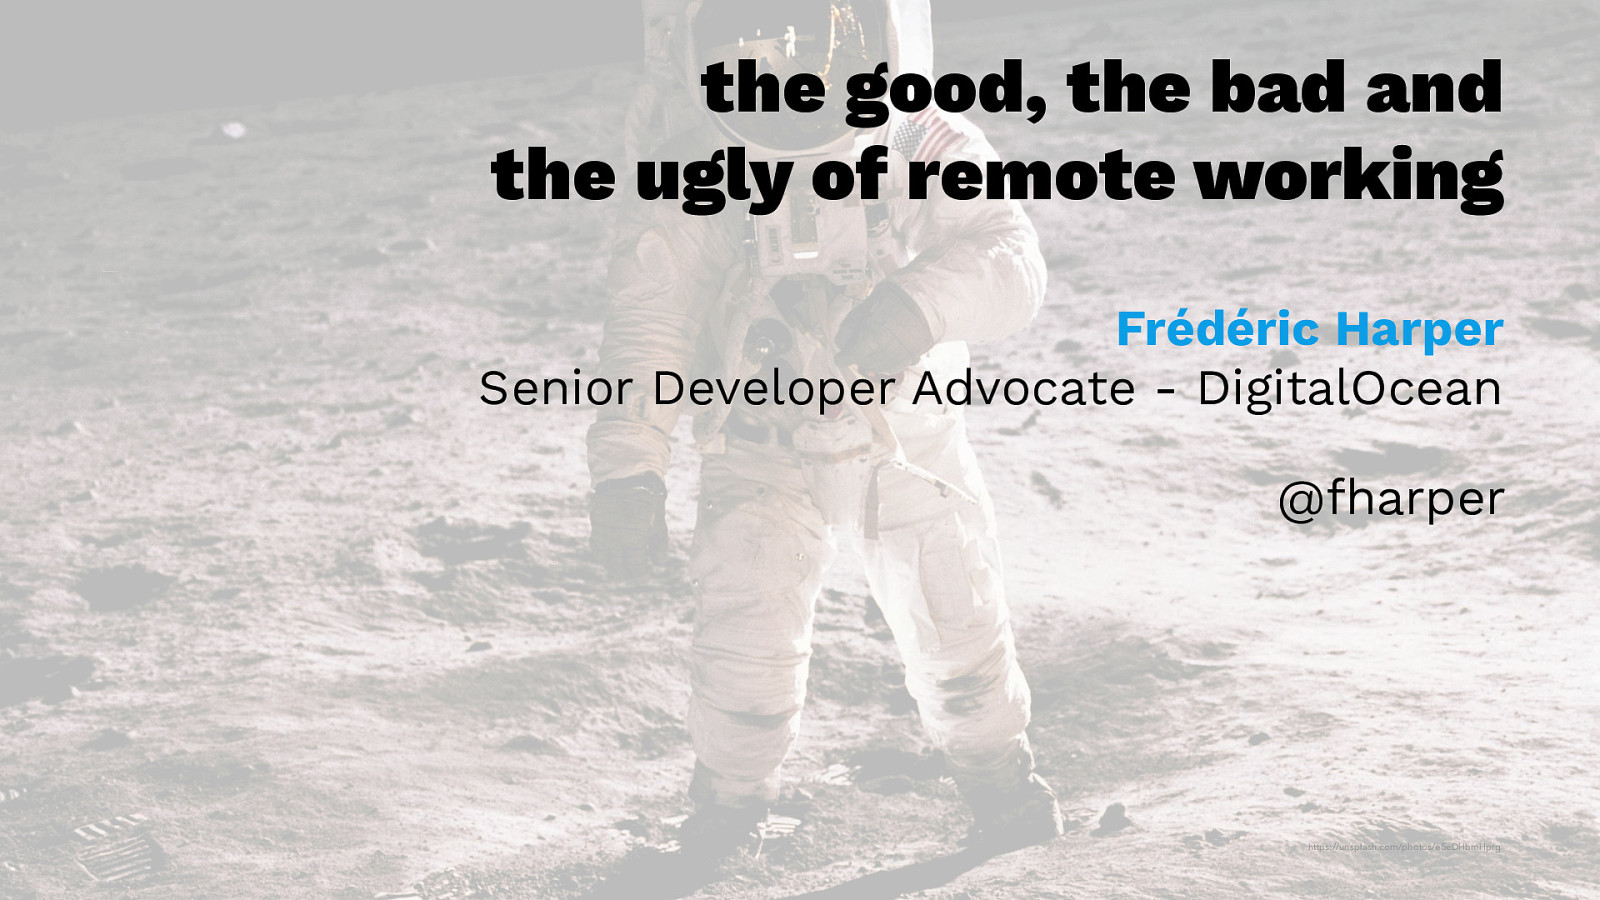 The Good, the Bad and the Ugly of Remote Working